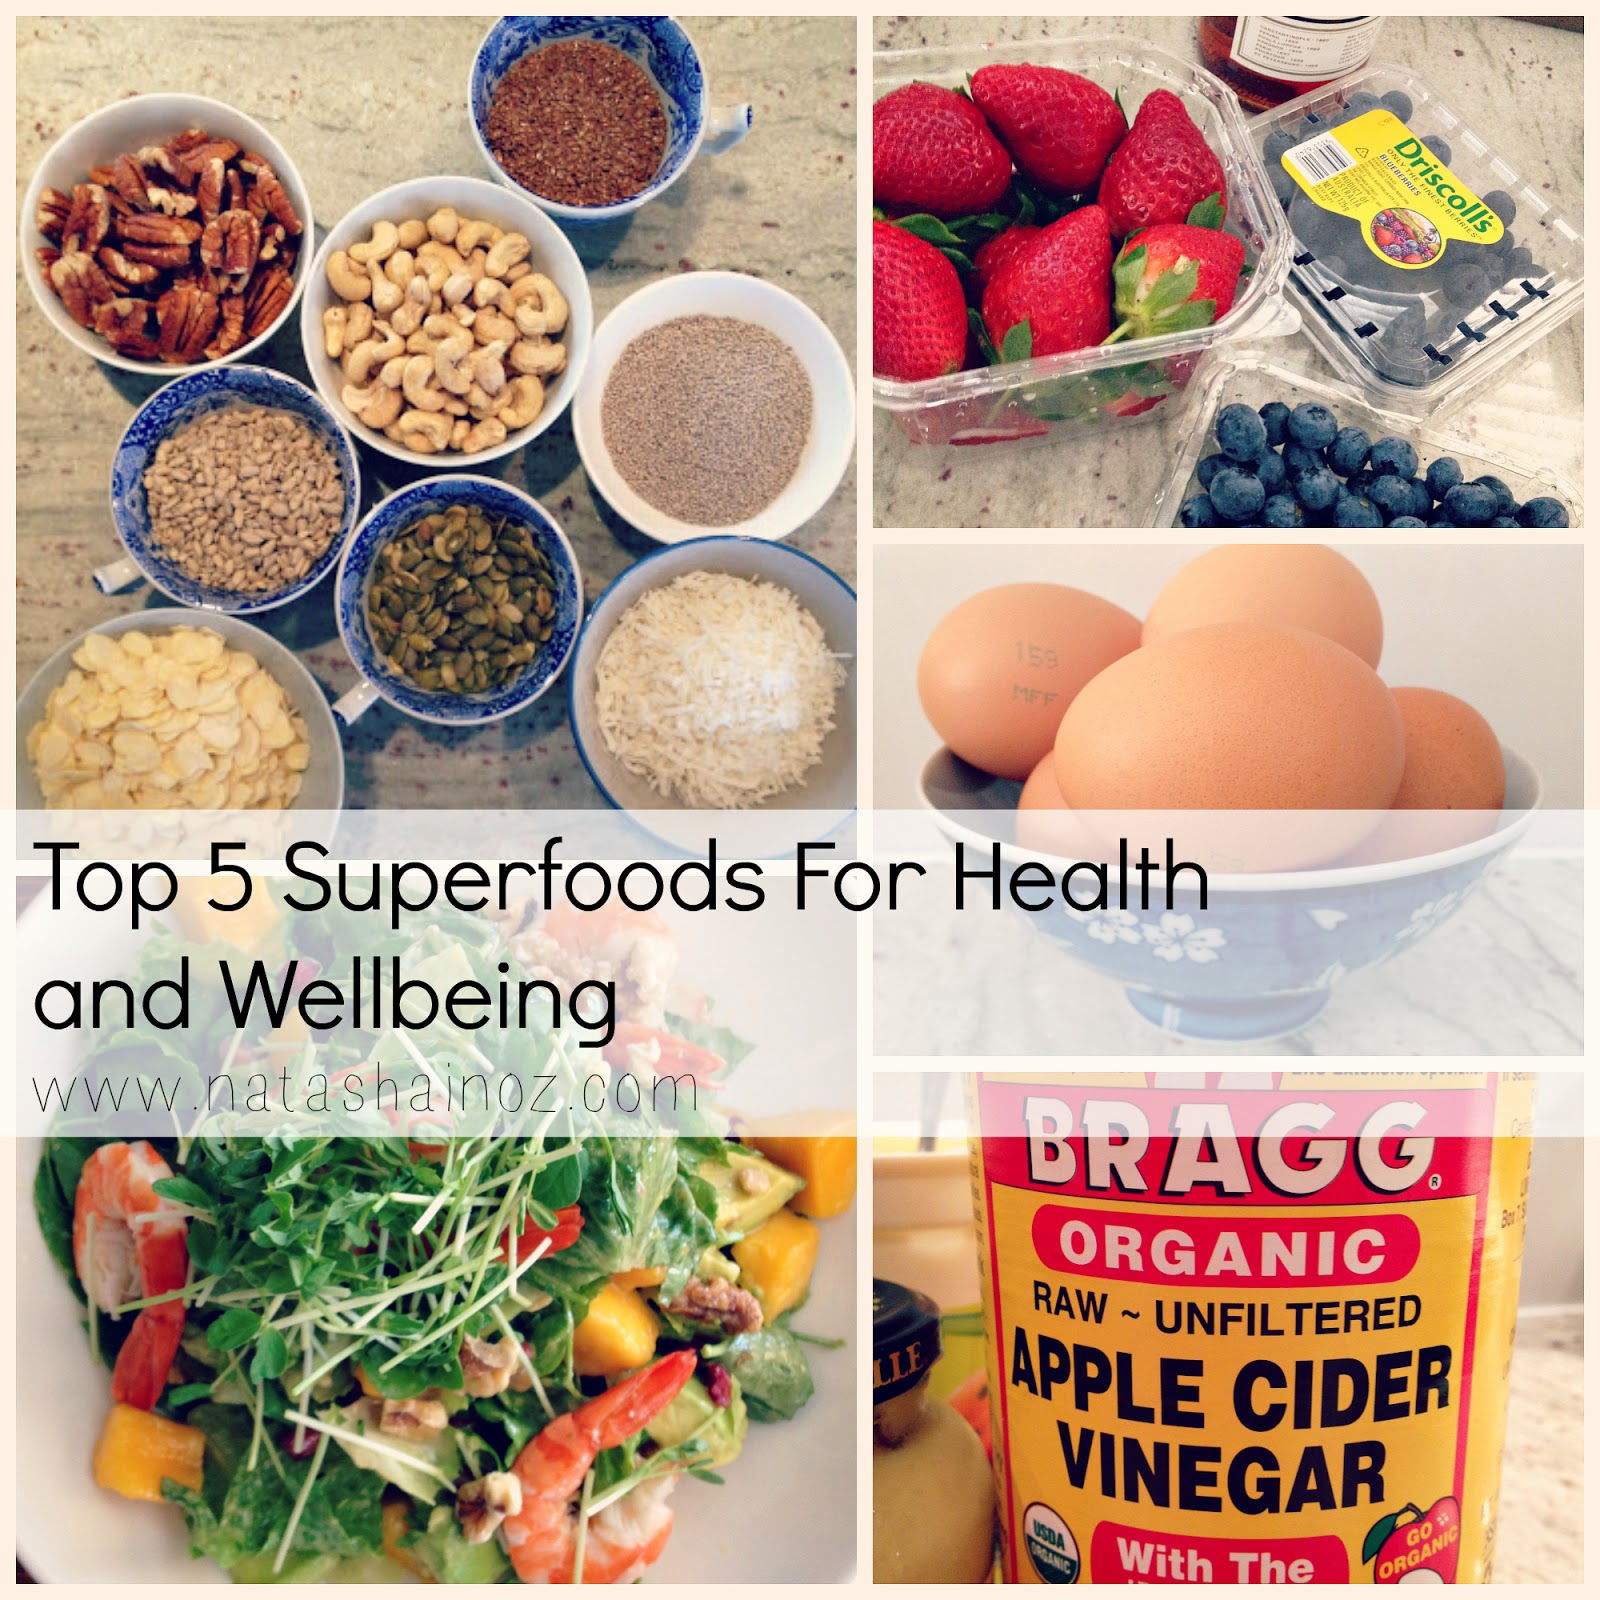 Top 5 Superfoods For Health and Wellbeing, Natasha in Oz